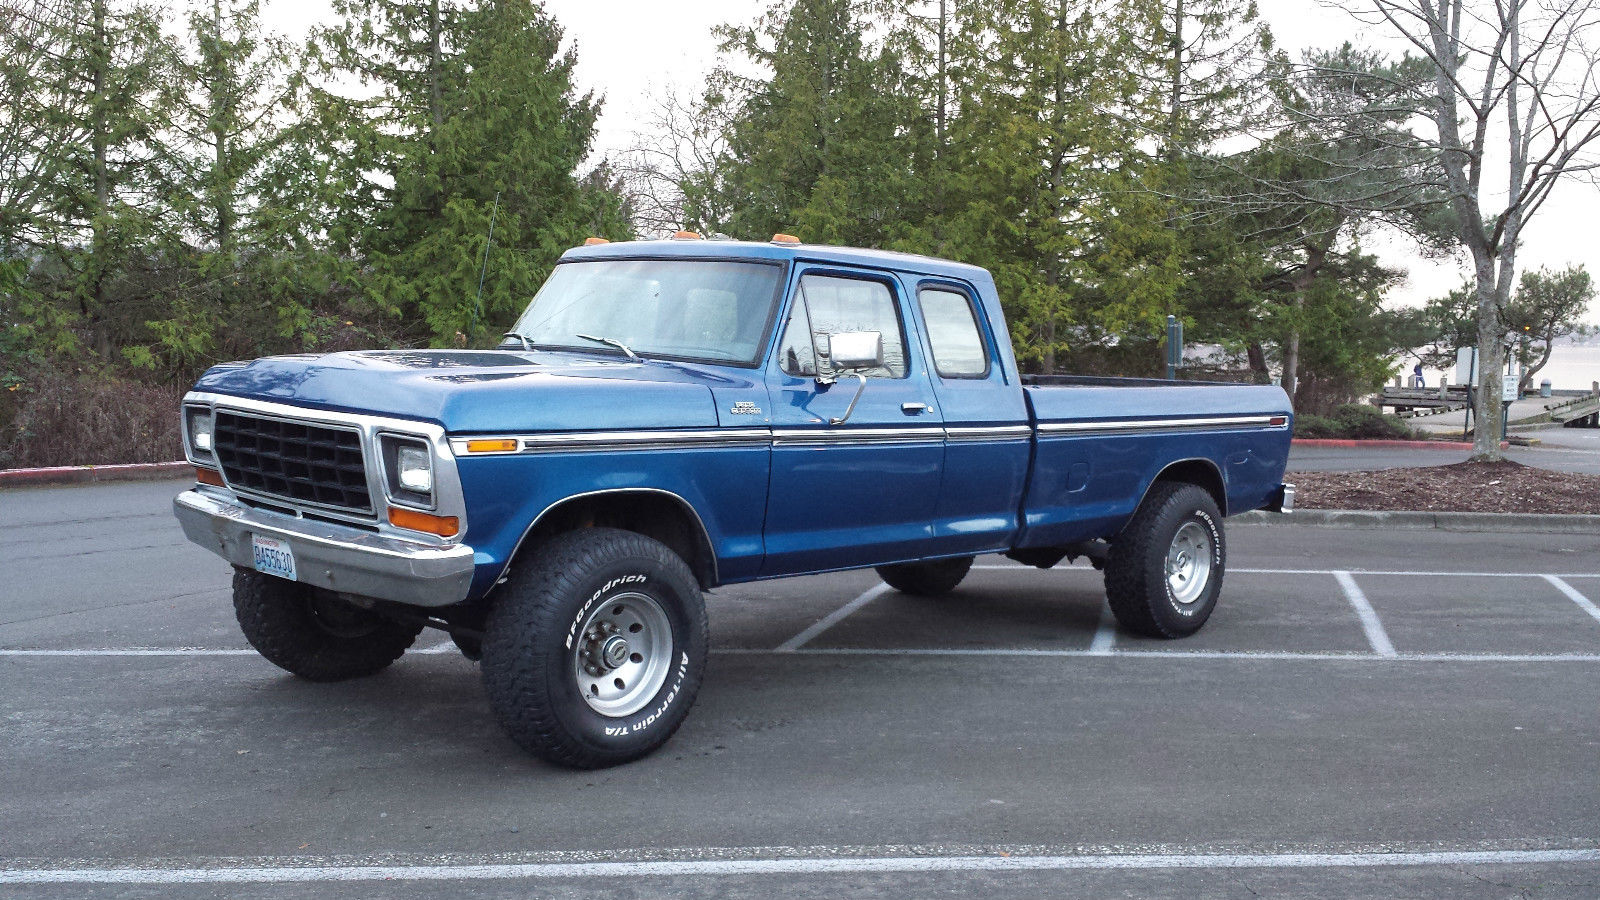 1979 Ford F250 4x4 Super Cab - Classic Ford F-250 1979 for sale